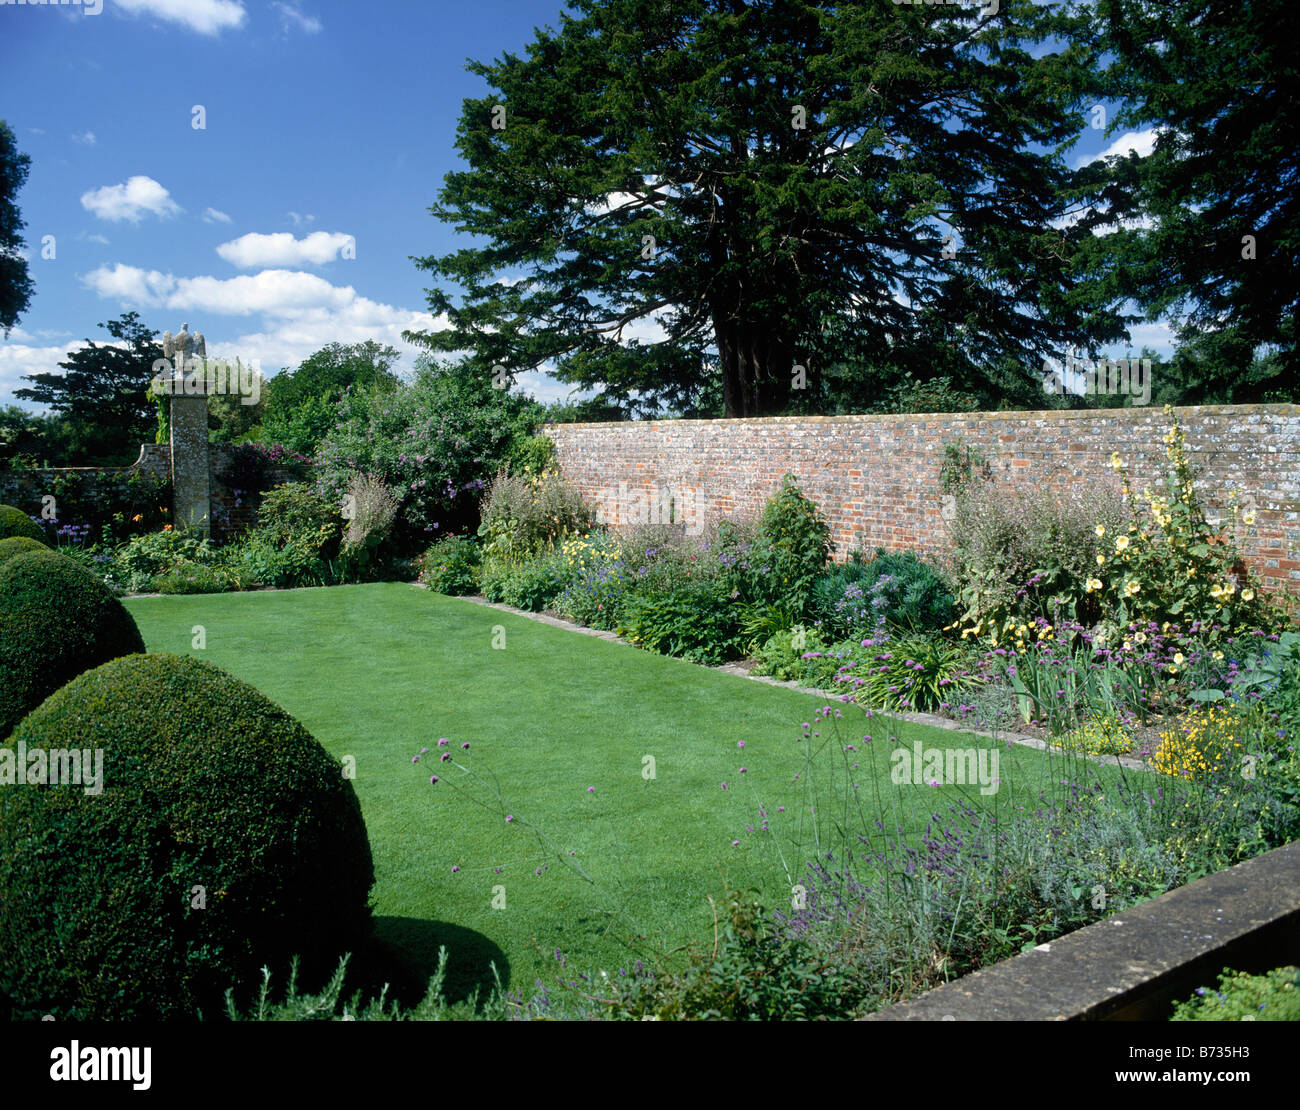 Eagle court in gardens of house Statue of Eagle on wall Lawn Flowers National Trust TINTINHULL HOUSE SOMERSET ENGLAND Stock Photo